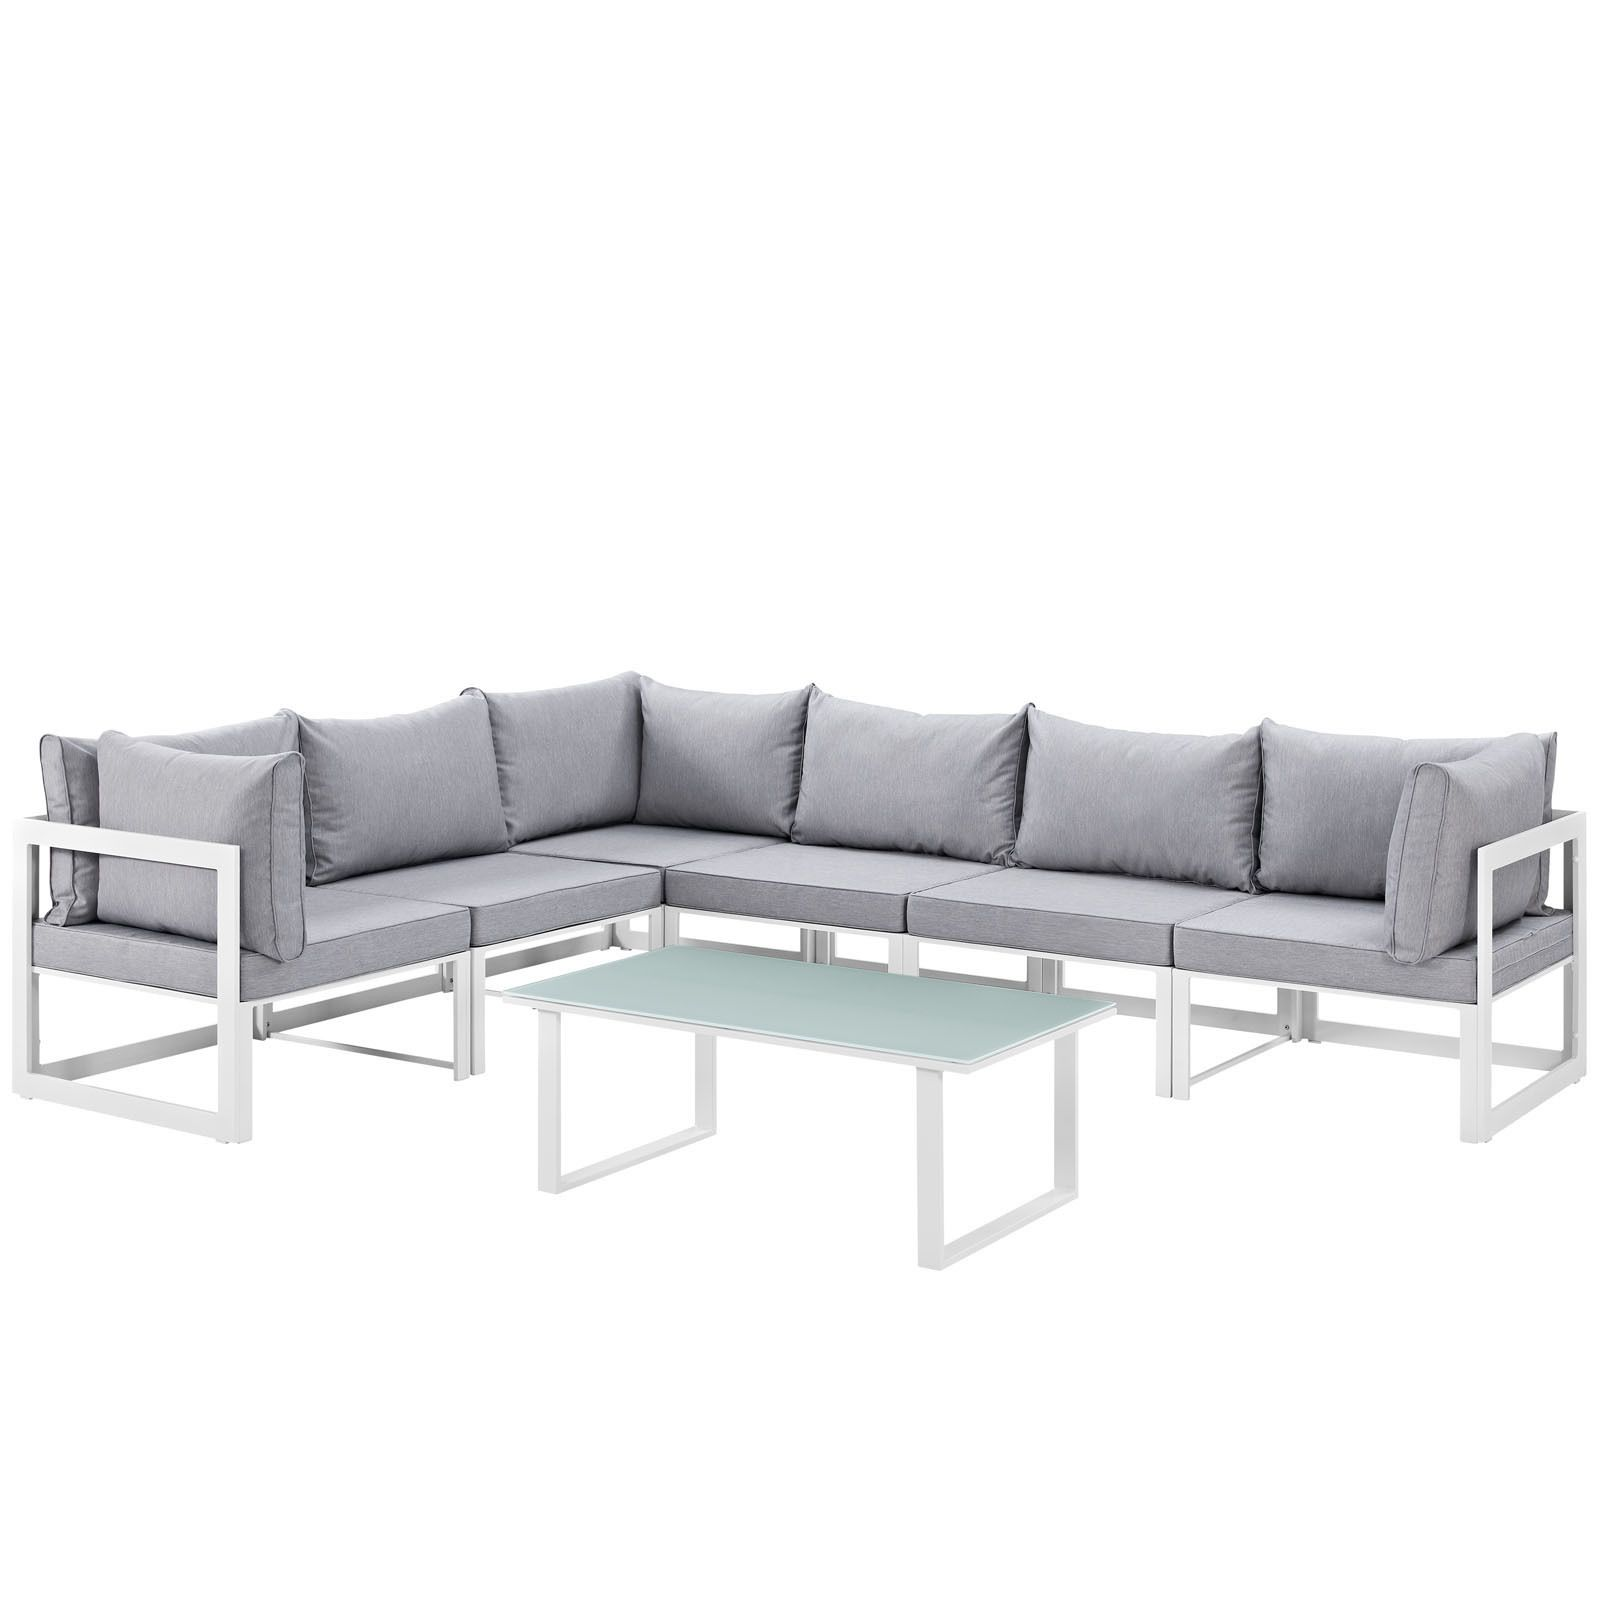 Best Chance 7 Piece Outdoor Patio Sectional Sofa Set White 400 x 300